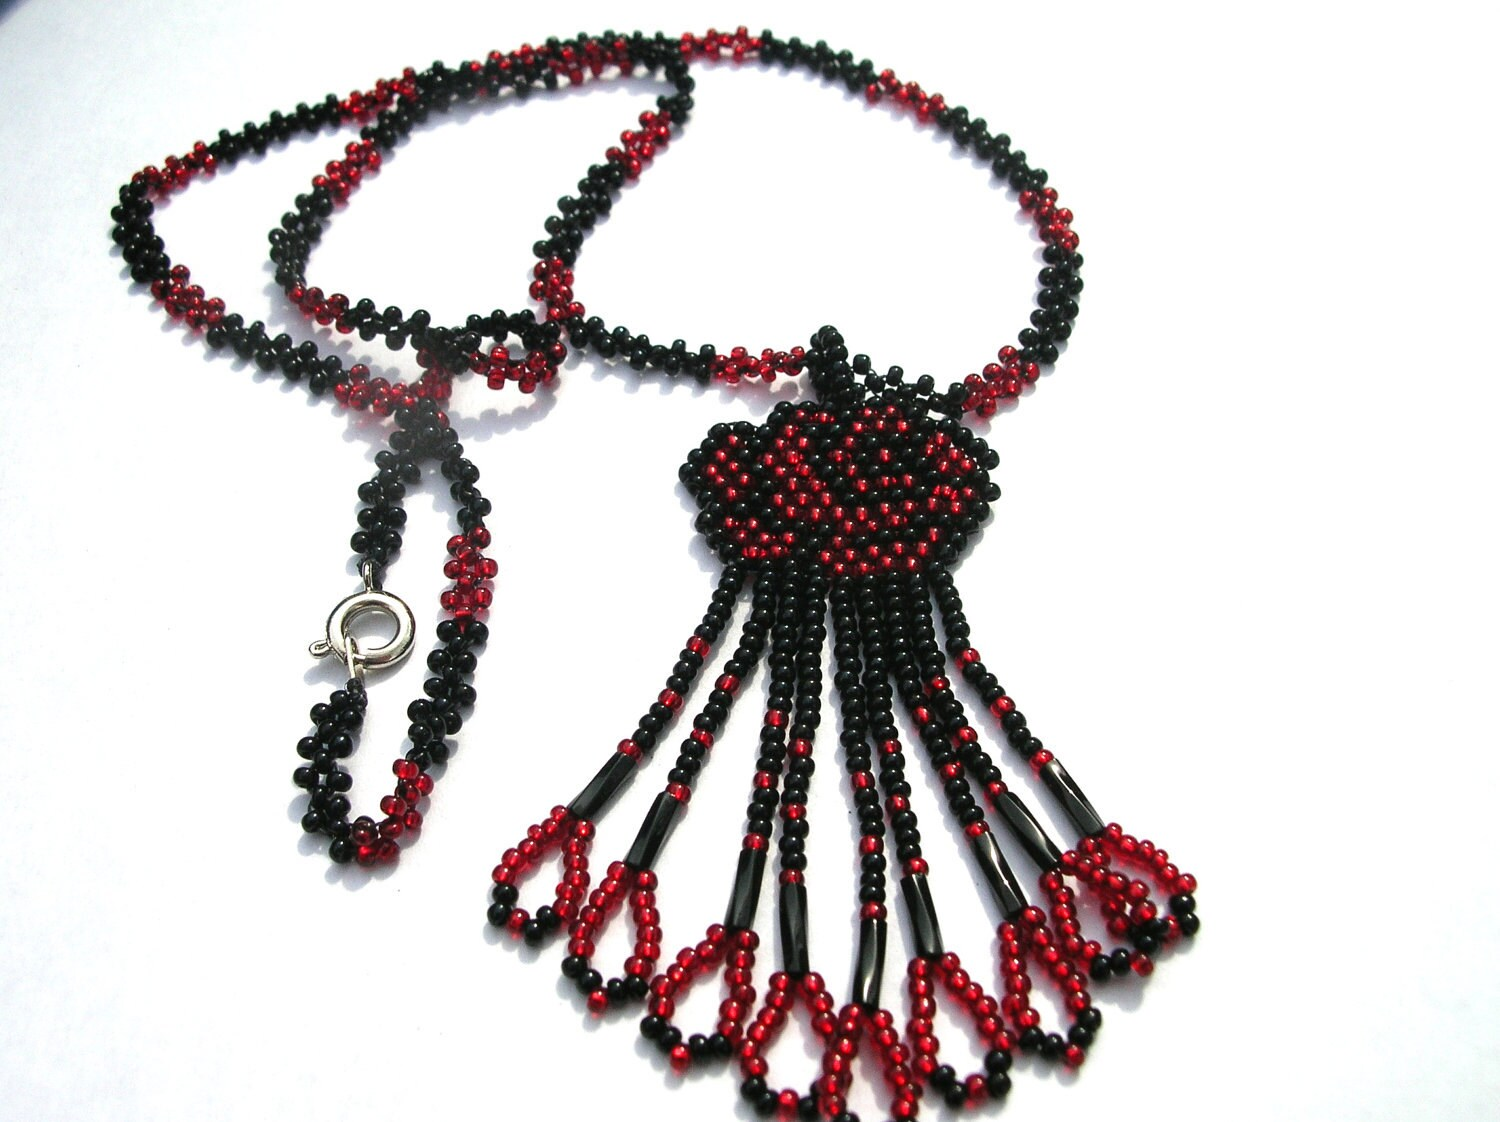 Beautiful Black and Red Beaded Necklace and Rose pendant